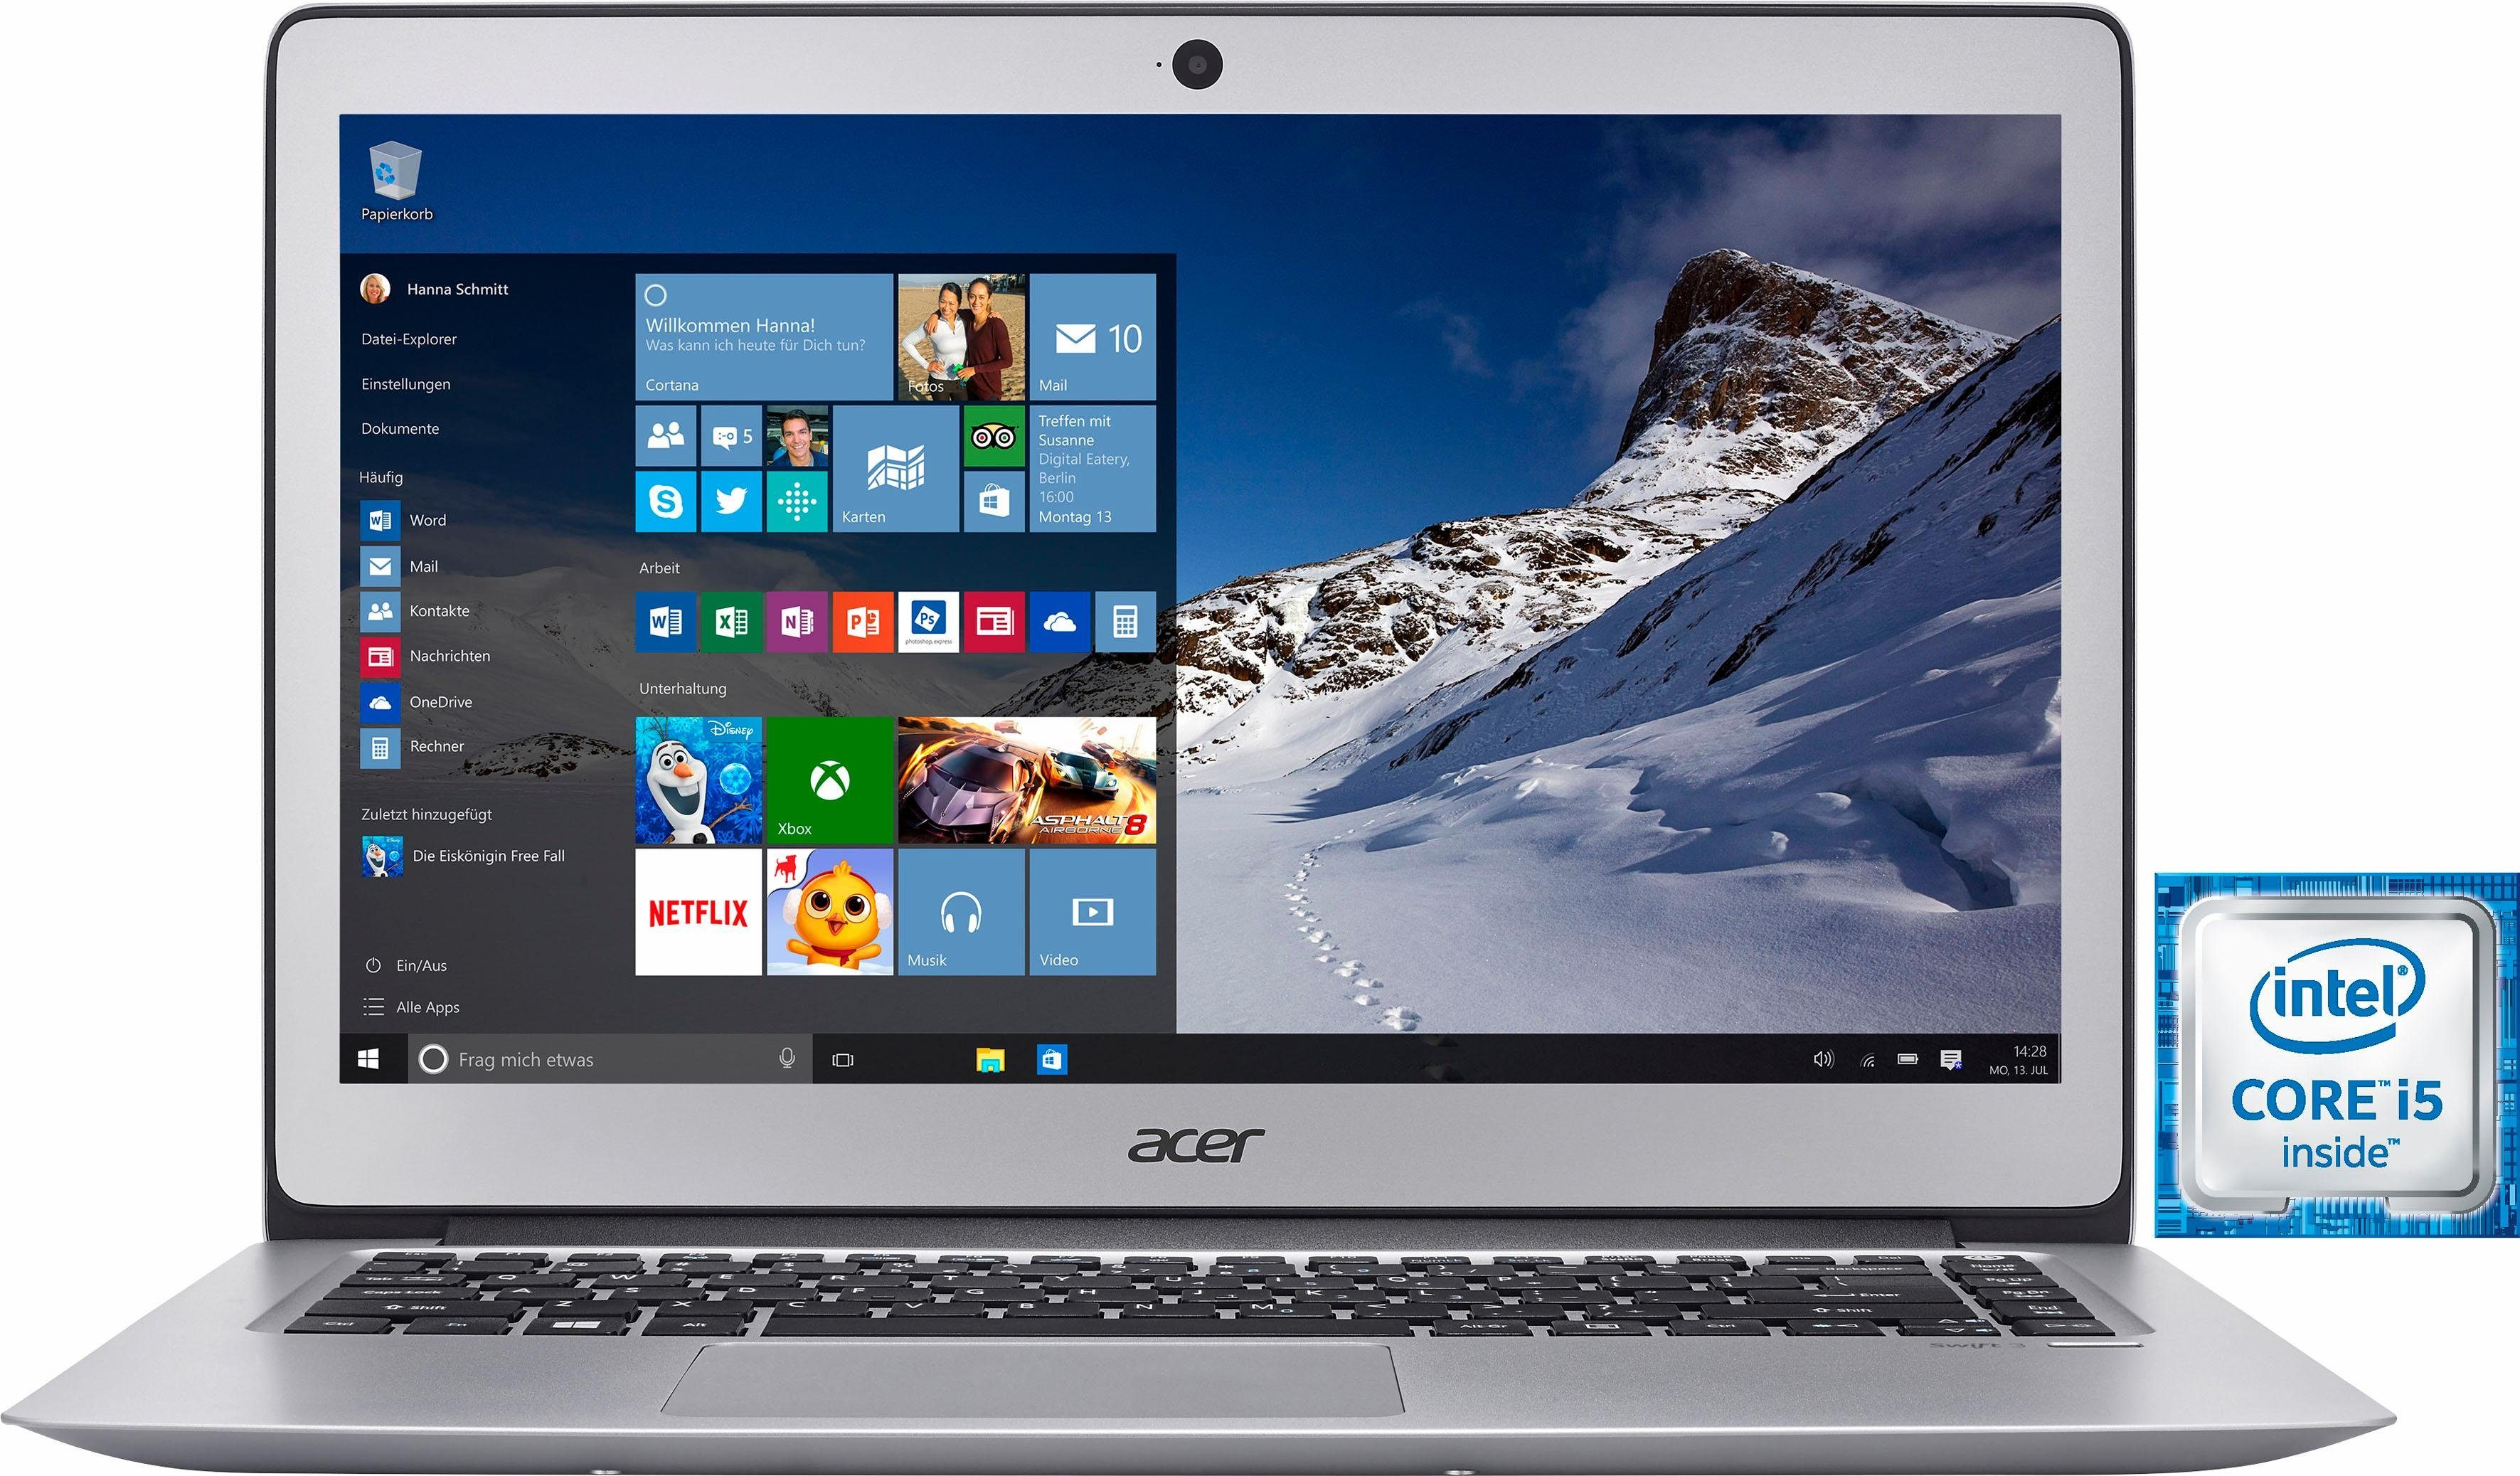 Acer Swift SF314-51-51QP Notebook, Intel® Core™ i5, 35,6 cm (14 Zoll), 256 GB Speicher